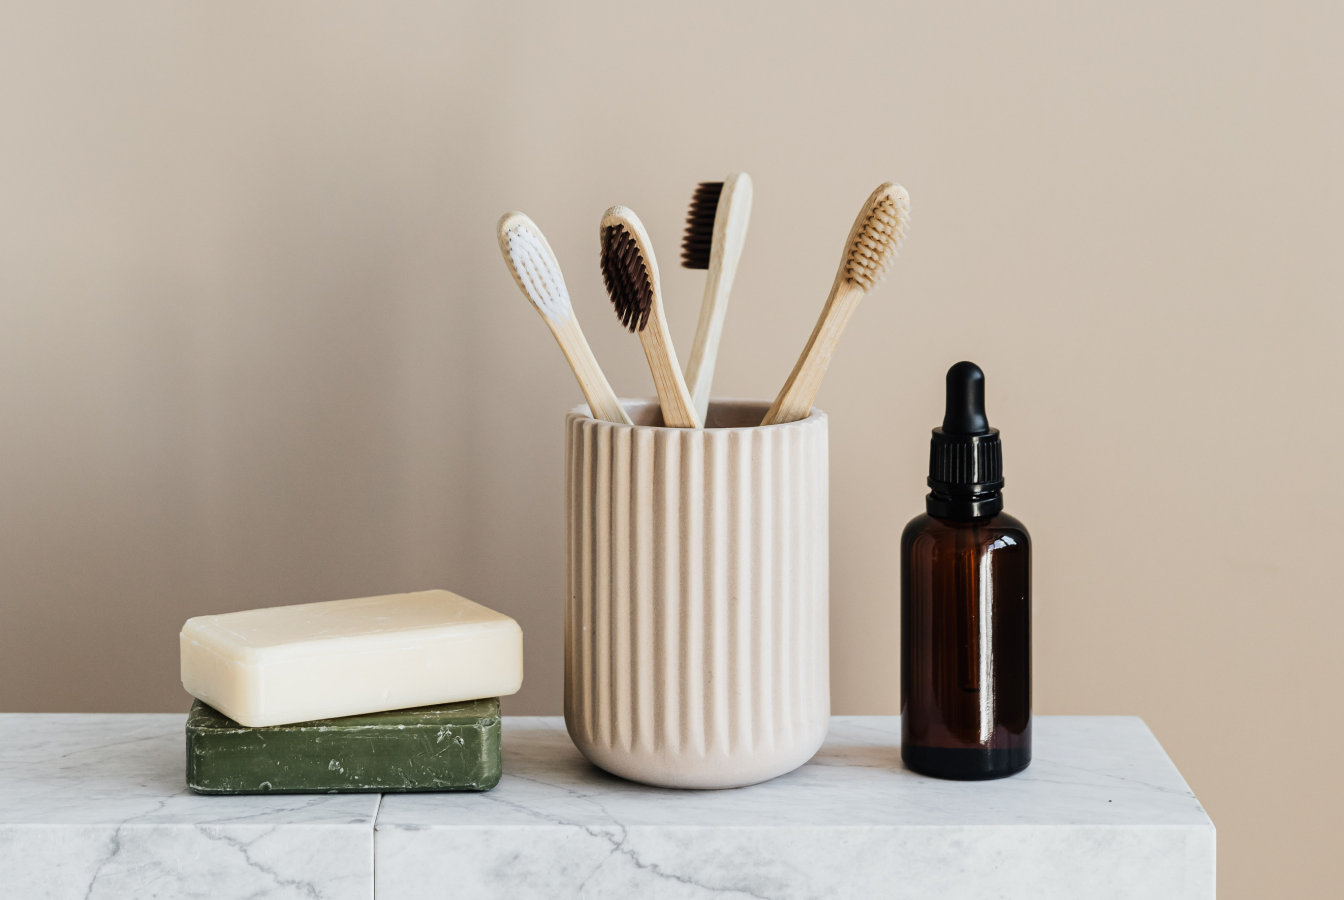 Eco friendly products including tooth brushes and soap